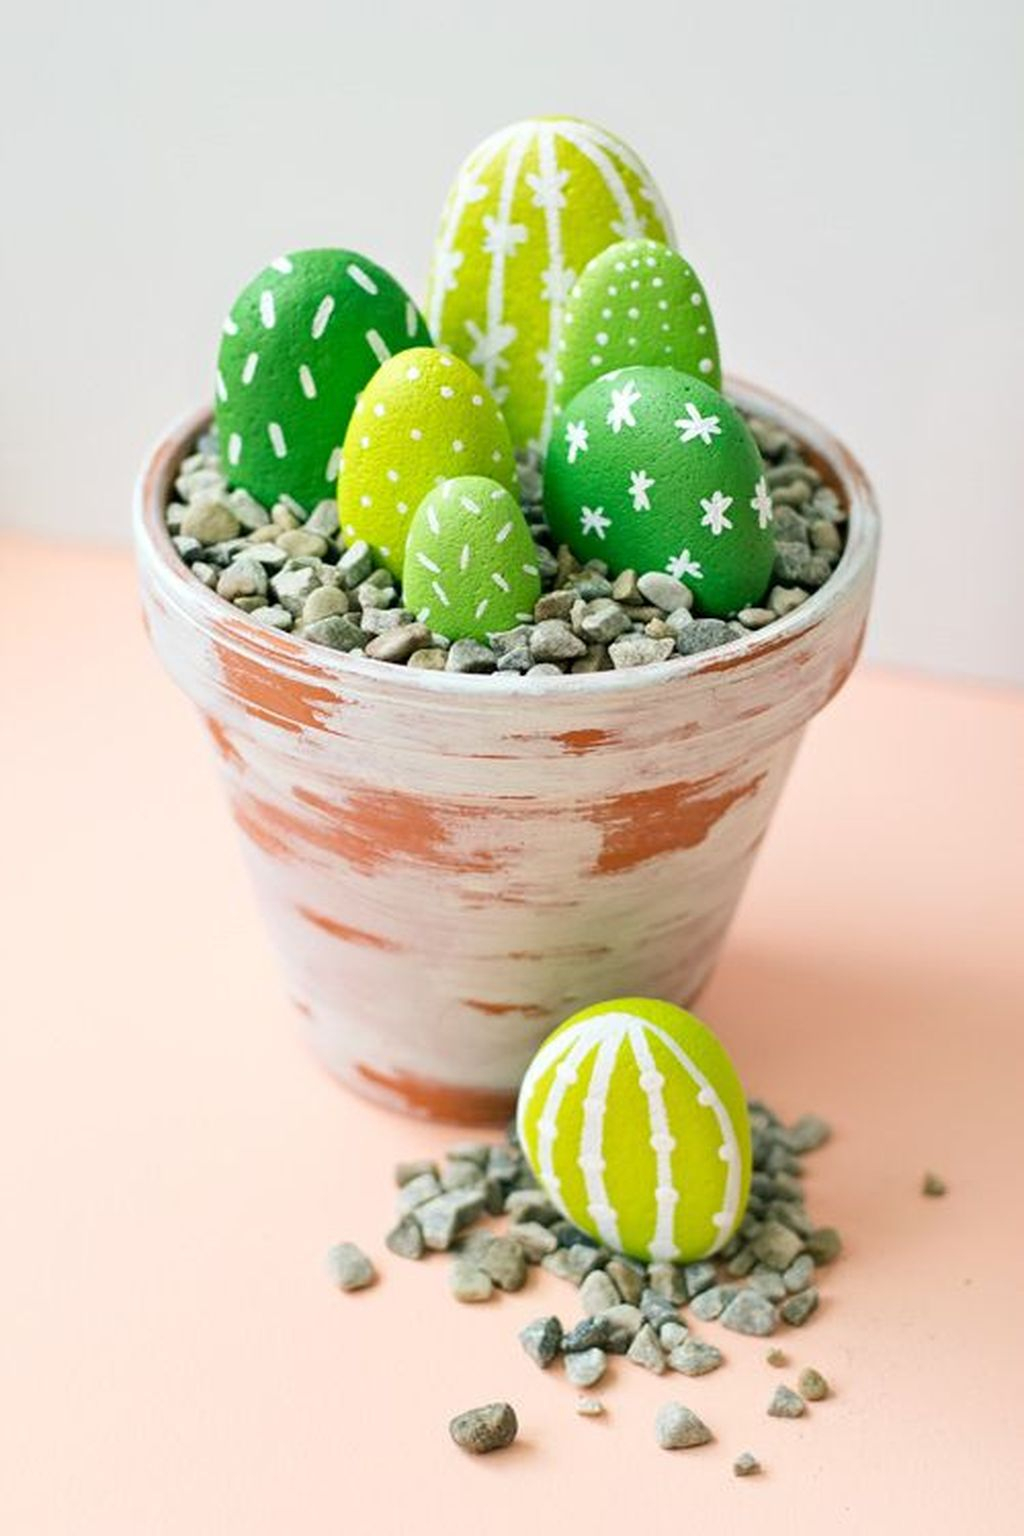 Affordable Diy Painted Rock Ideas For Home Decoration 08